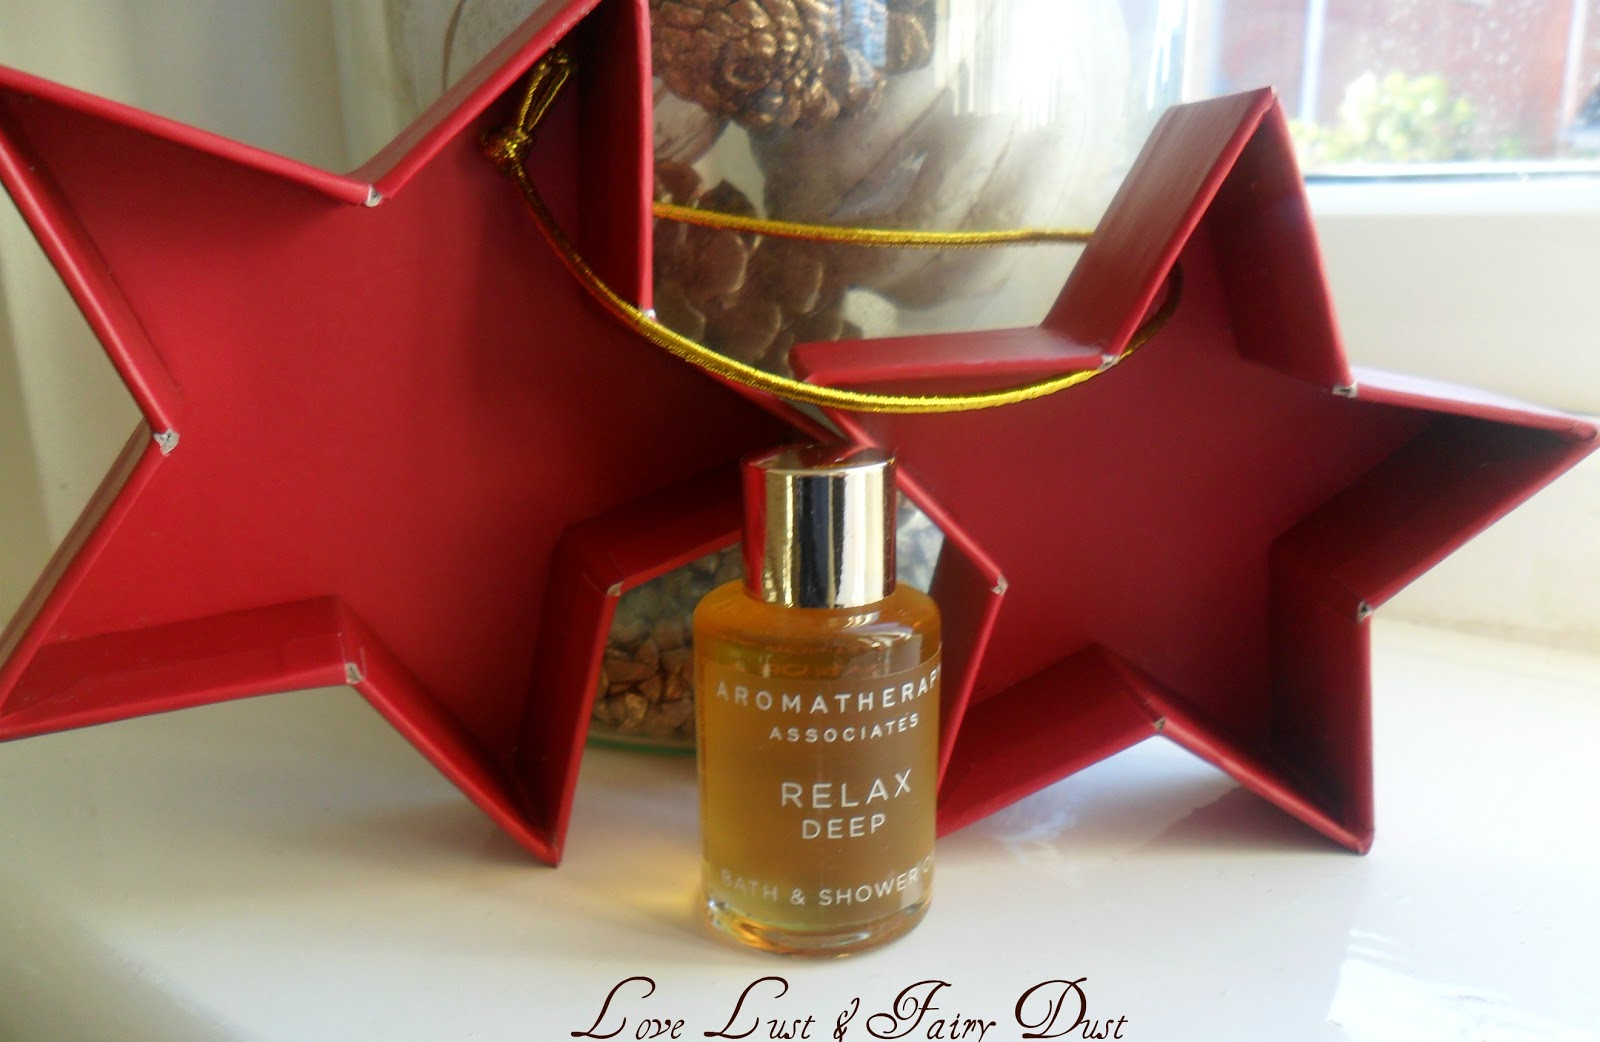 bath oil from aromatherapy associates